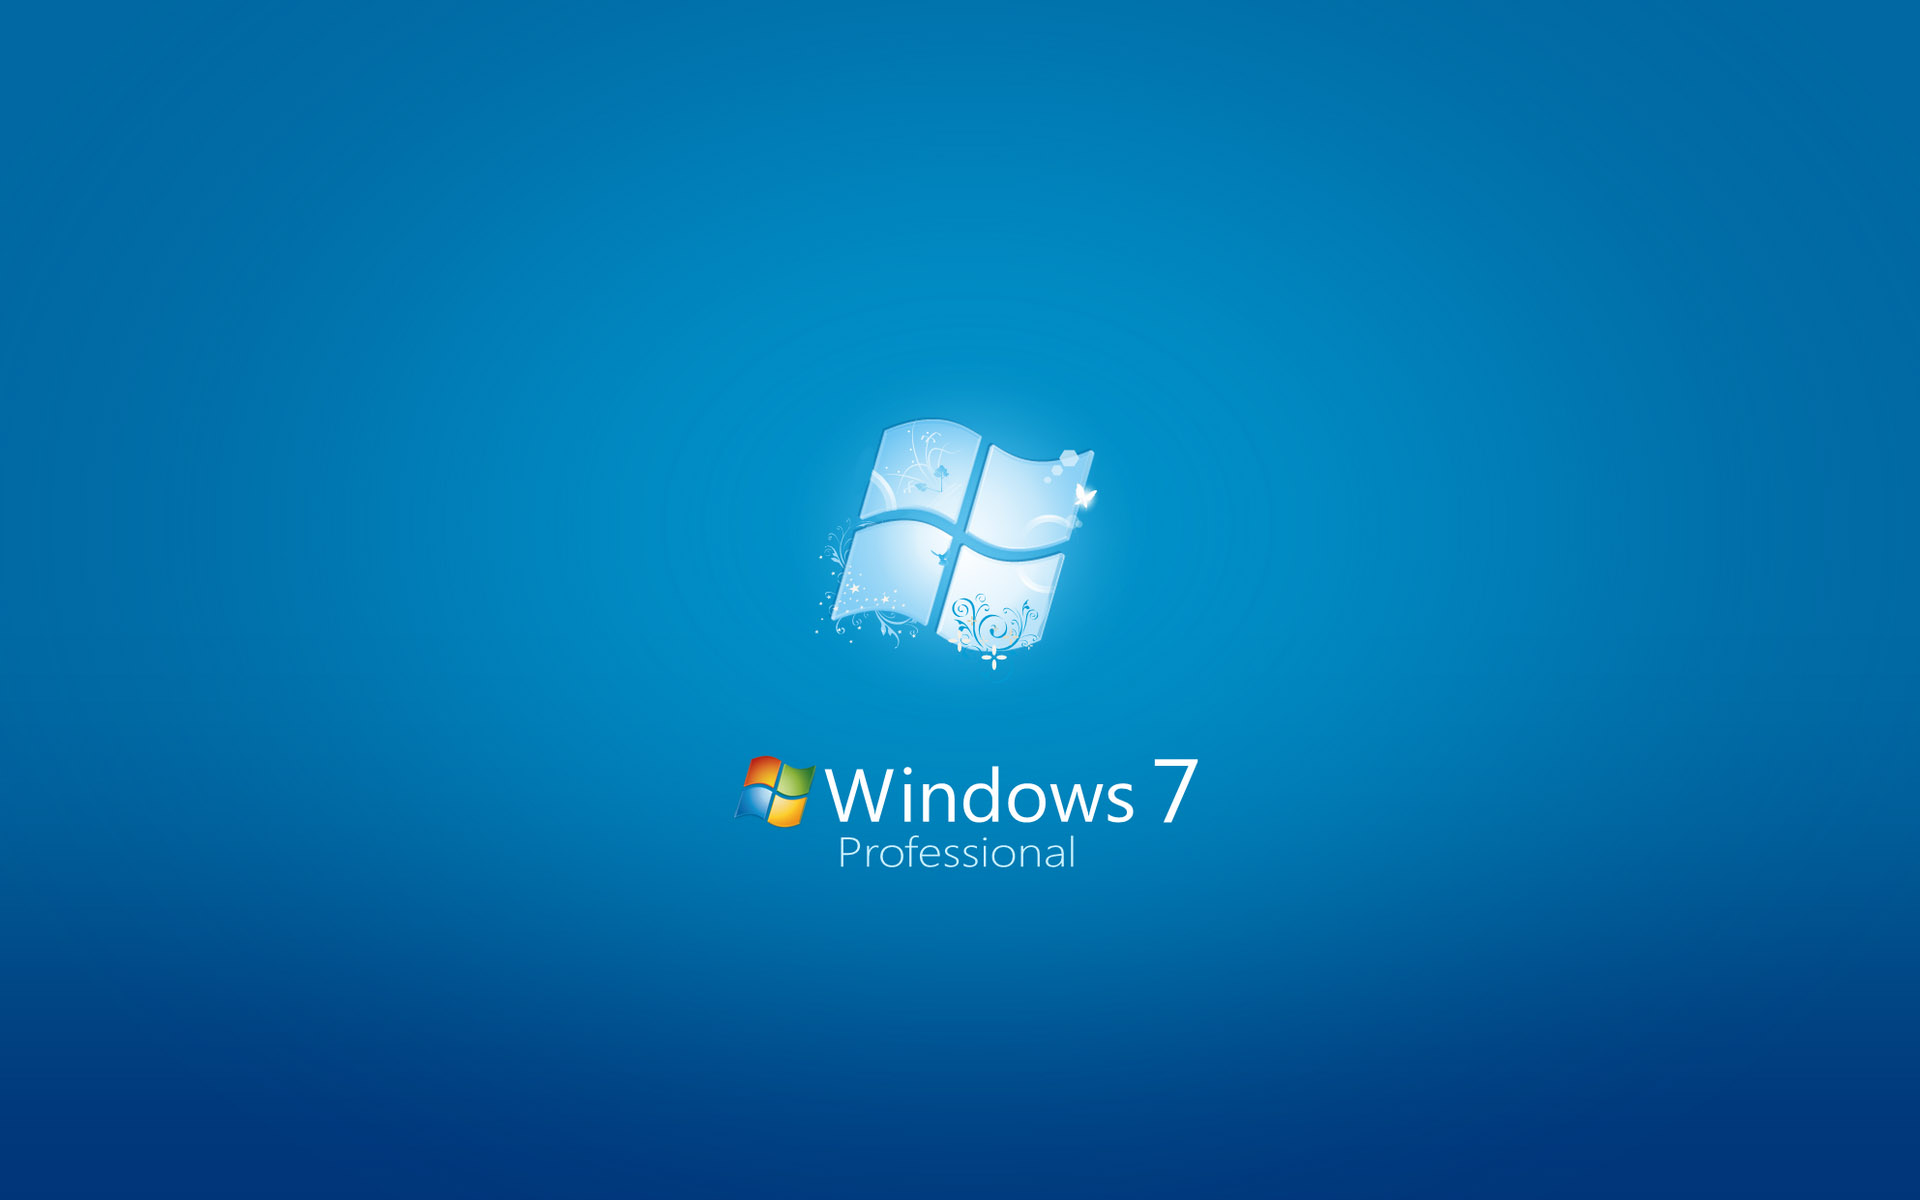 Windows Desktop Wallpaper 9080